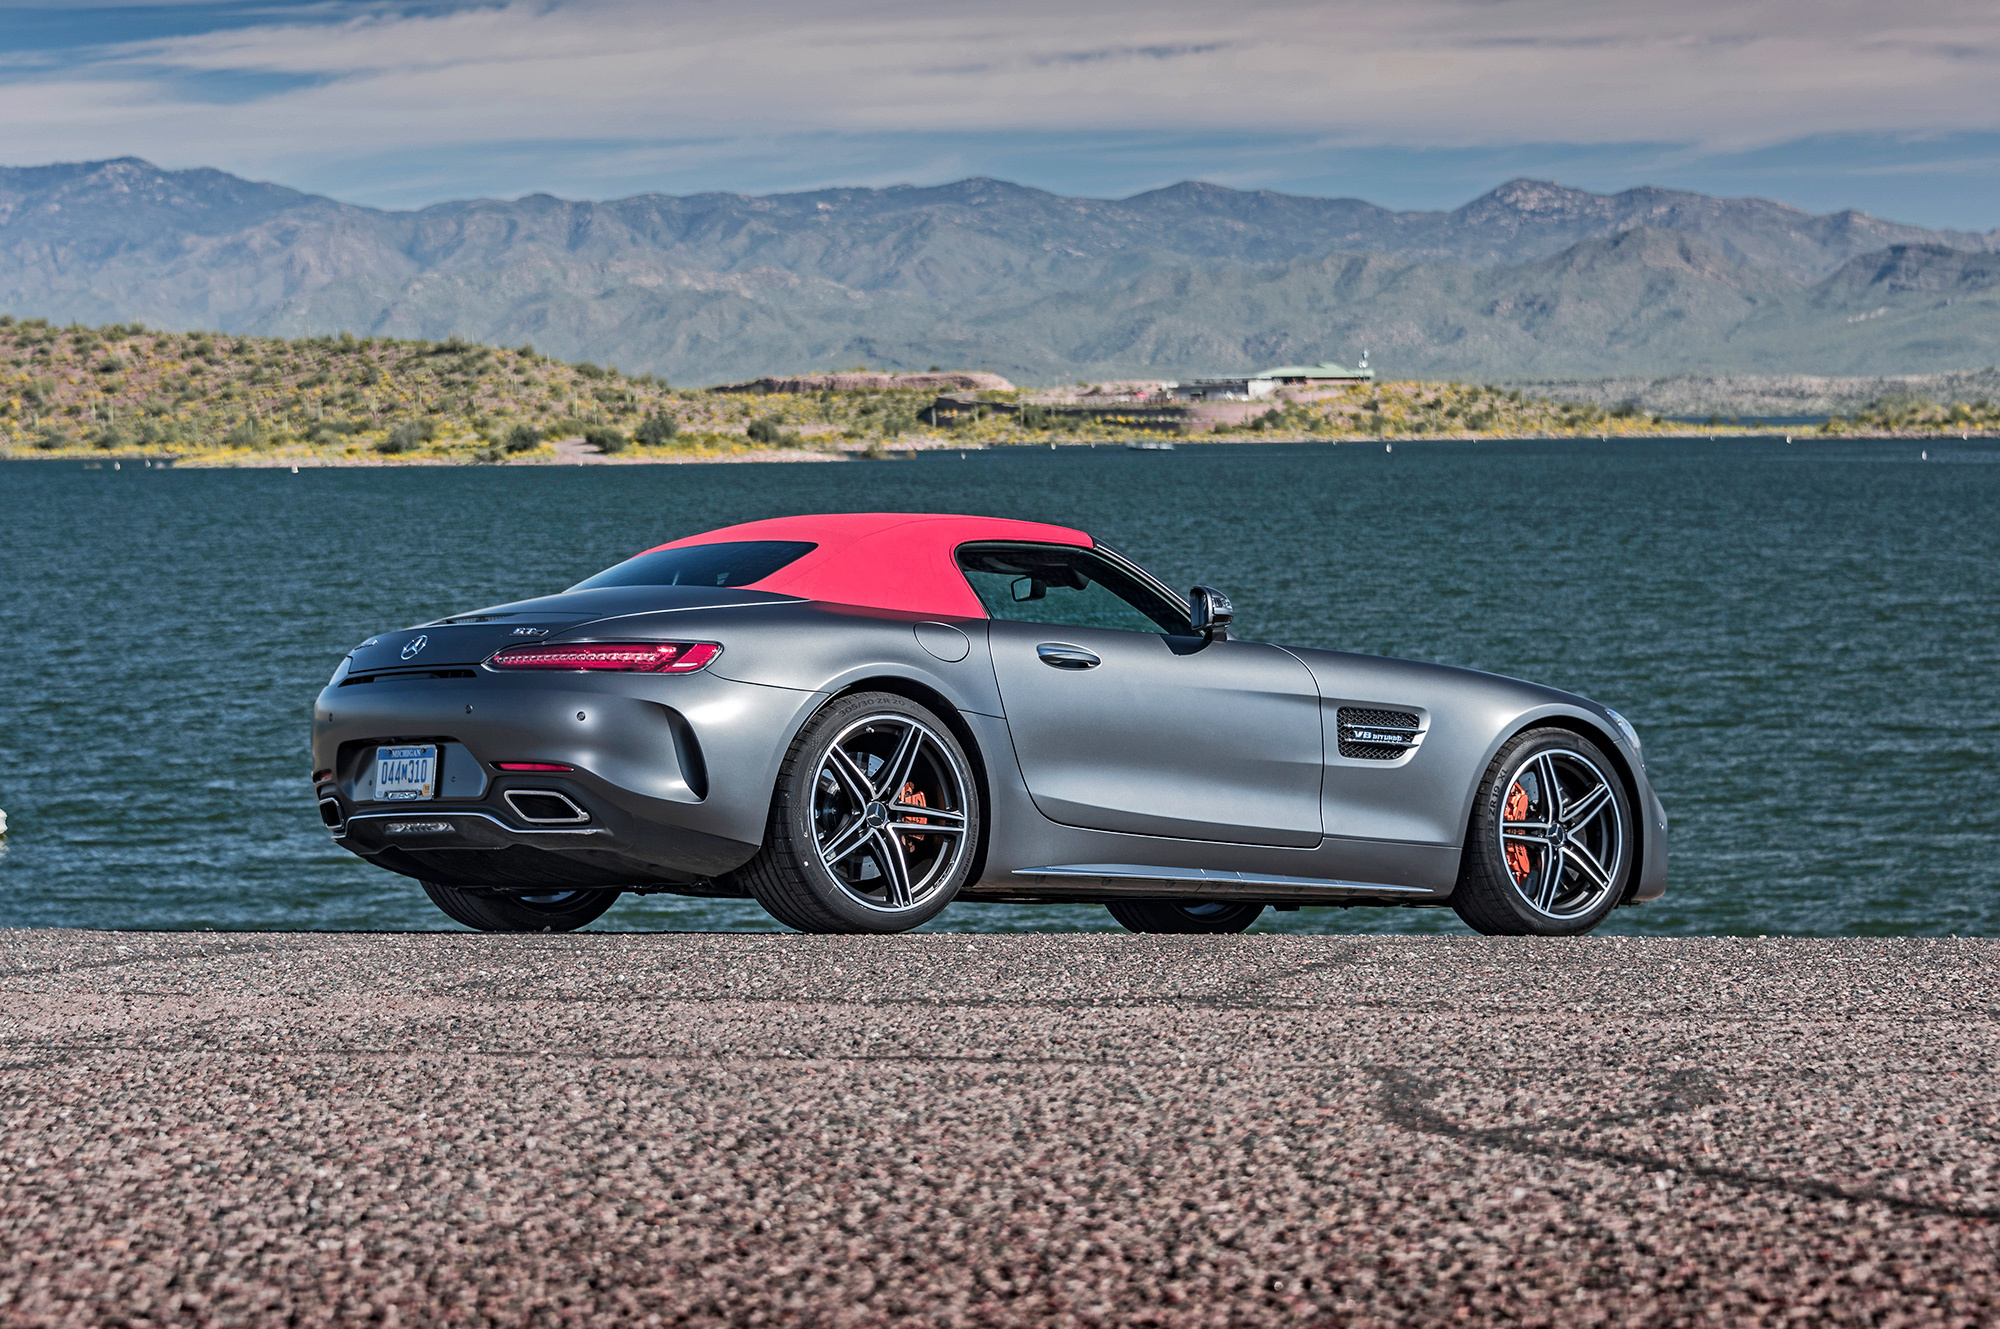 Mercedes Amg Gt C Roadster Wallpapers Images Photos